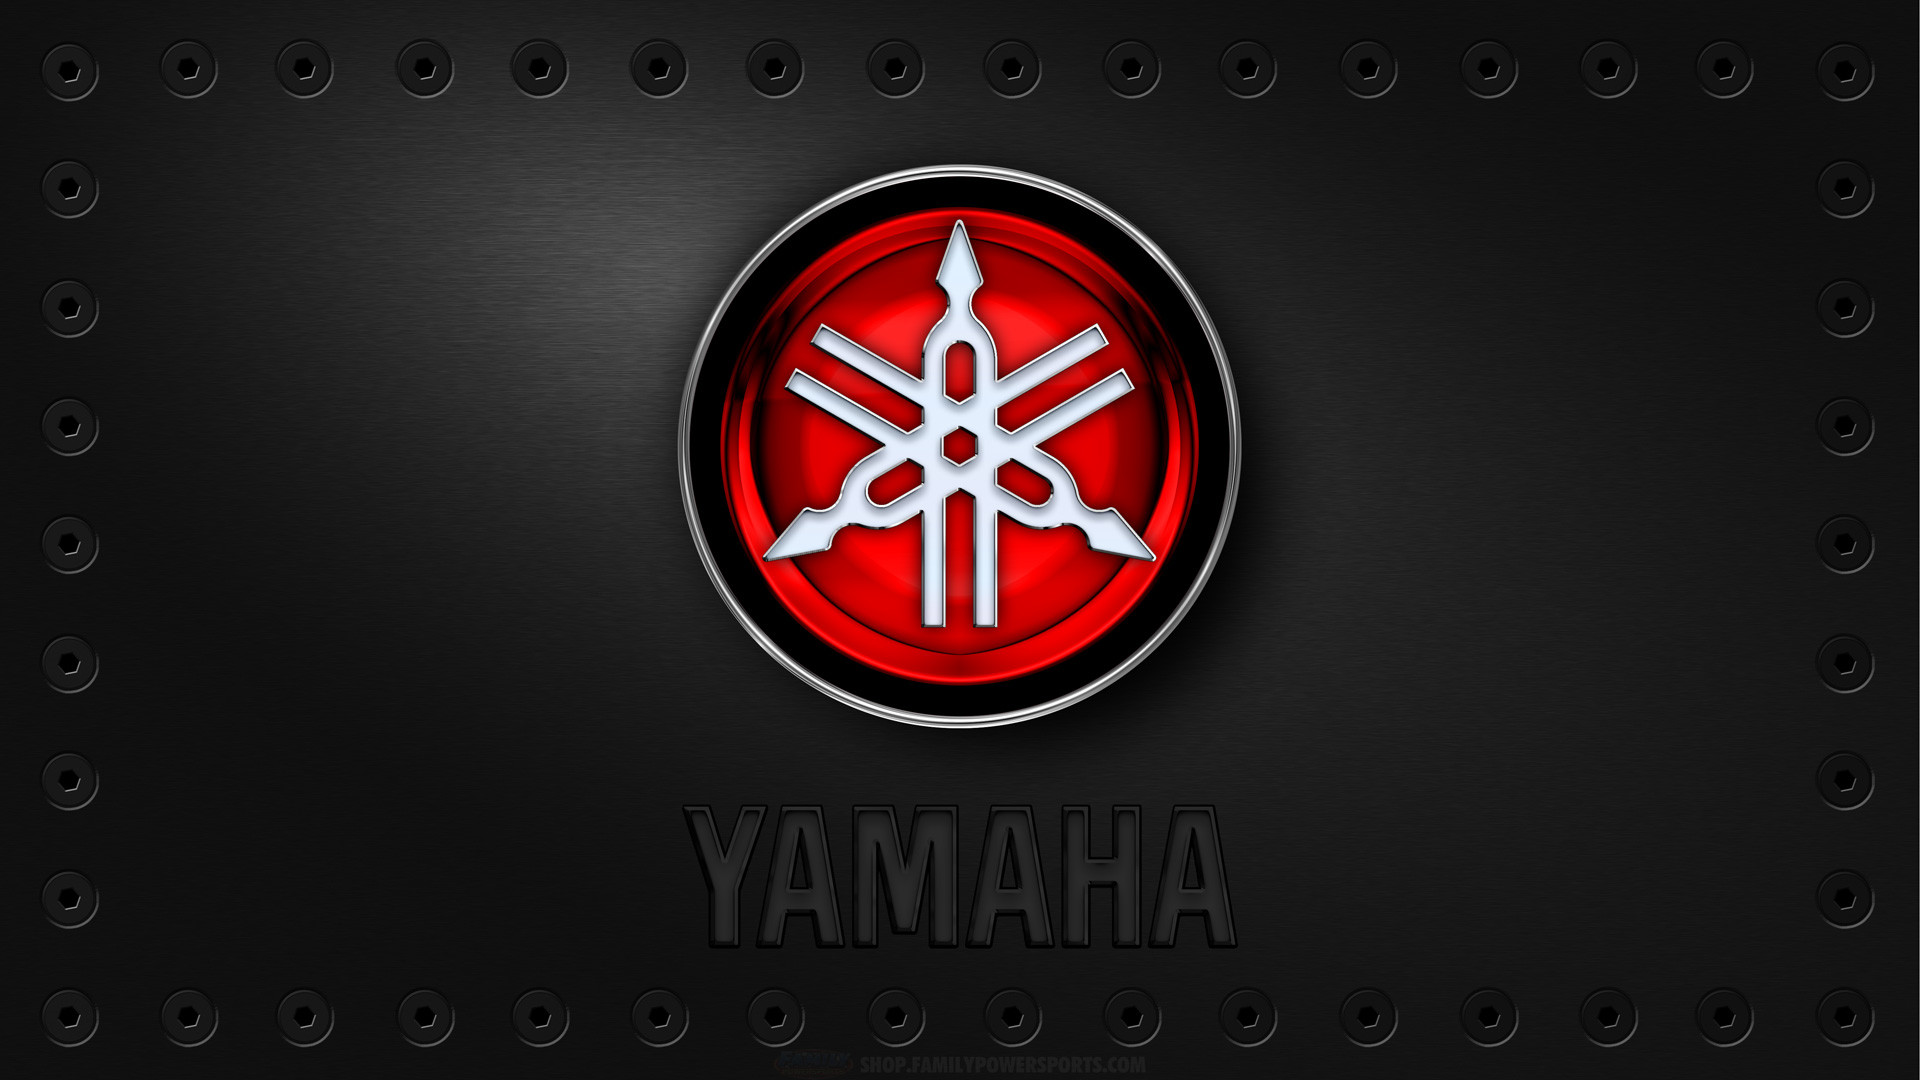 Yamaha Logo Wallpapers HD